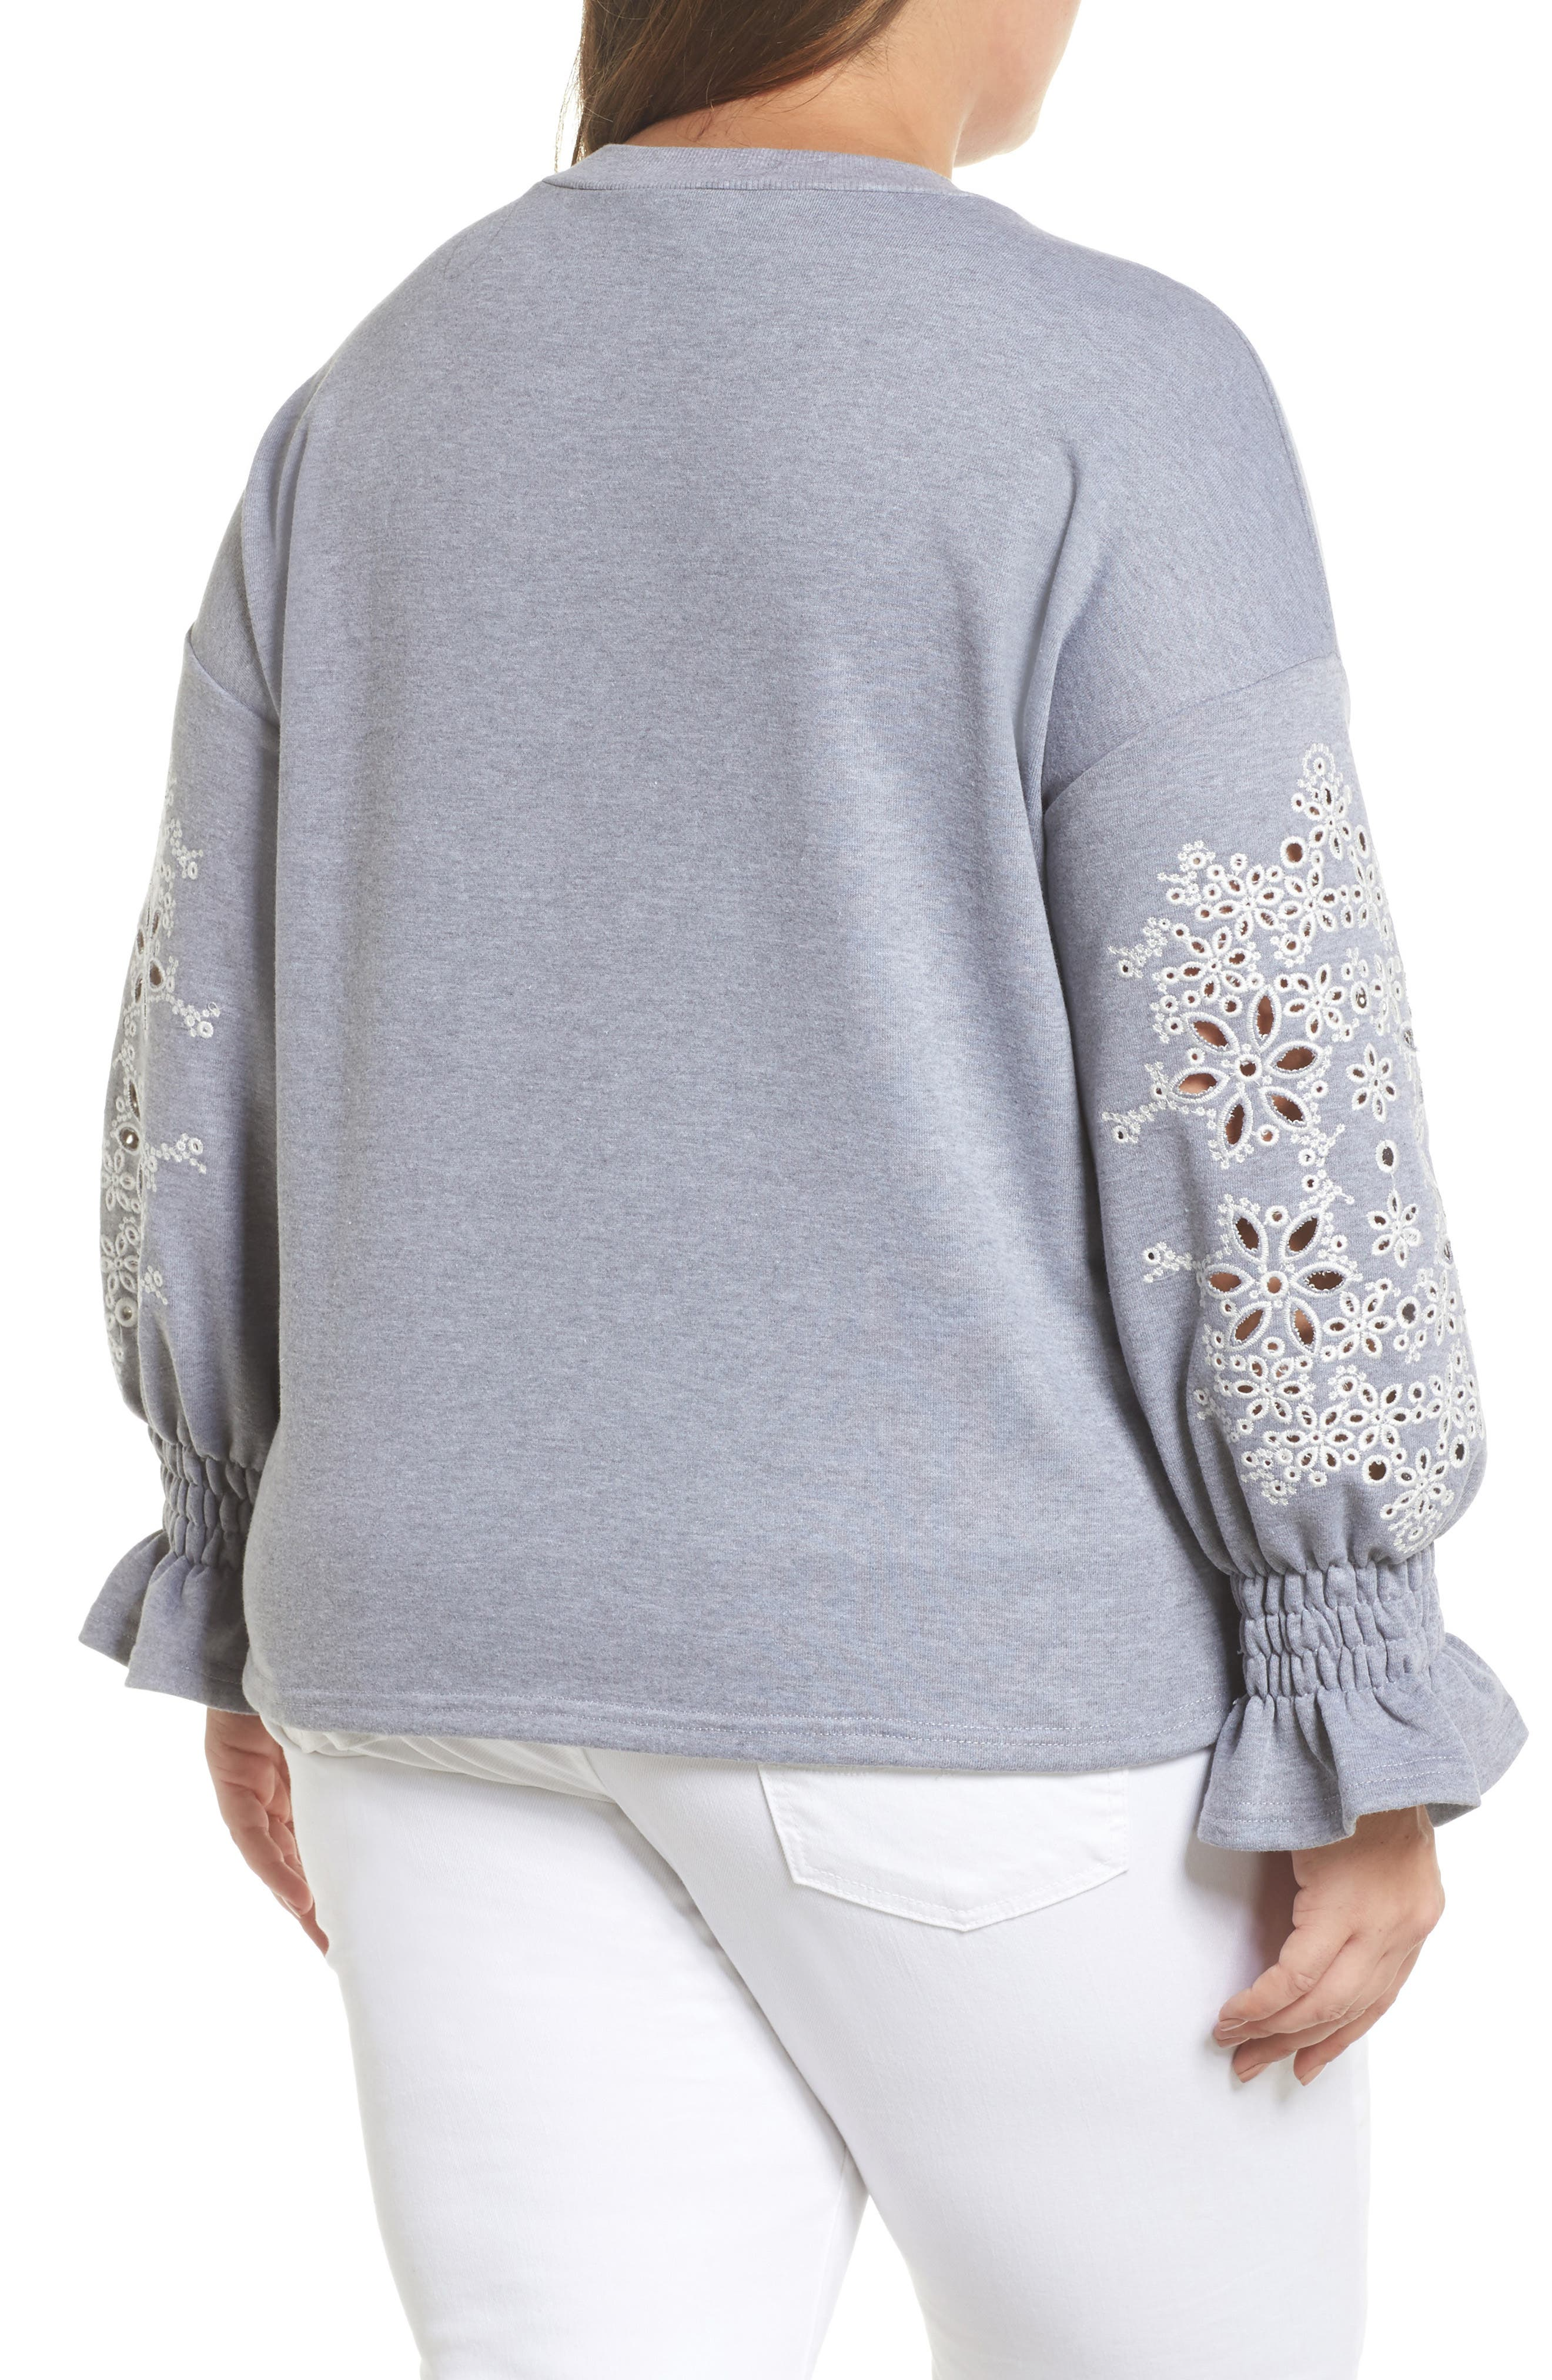 Broderie Anglaise Embellished Sweatshirt,                             Alternate thumbnail 2, color,                             020